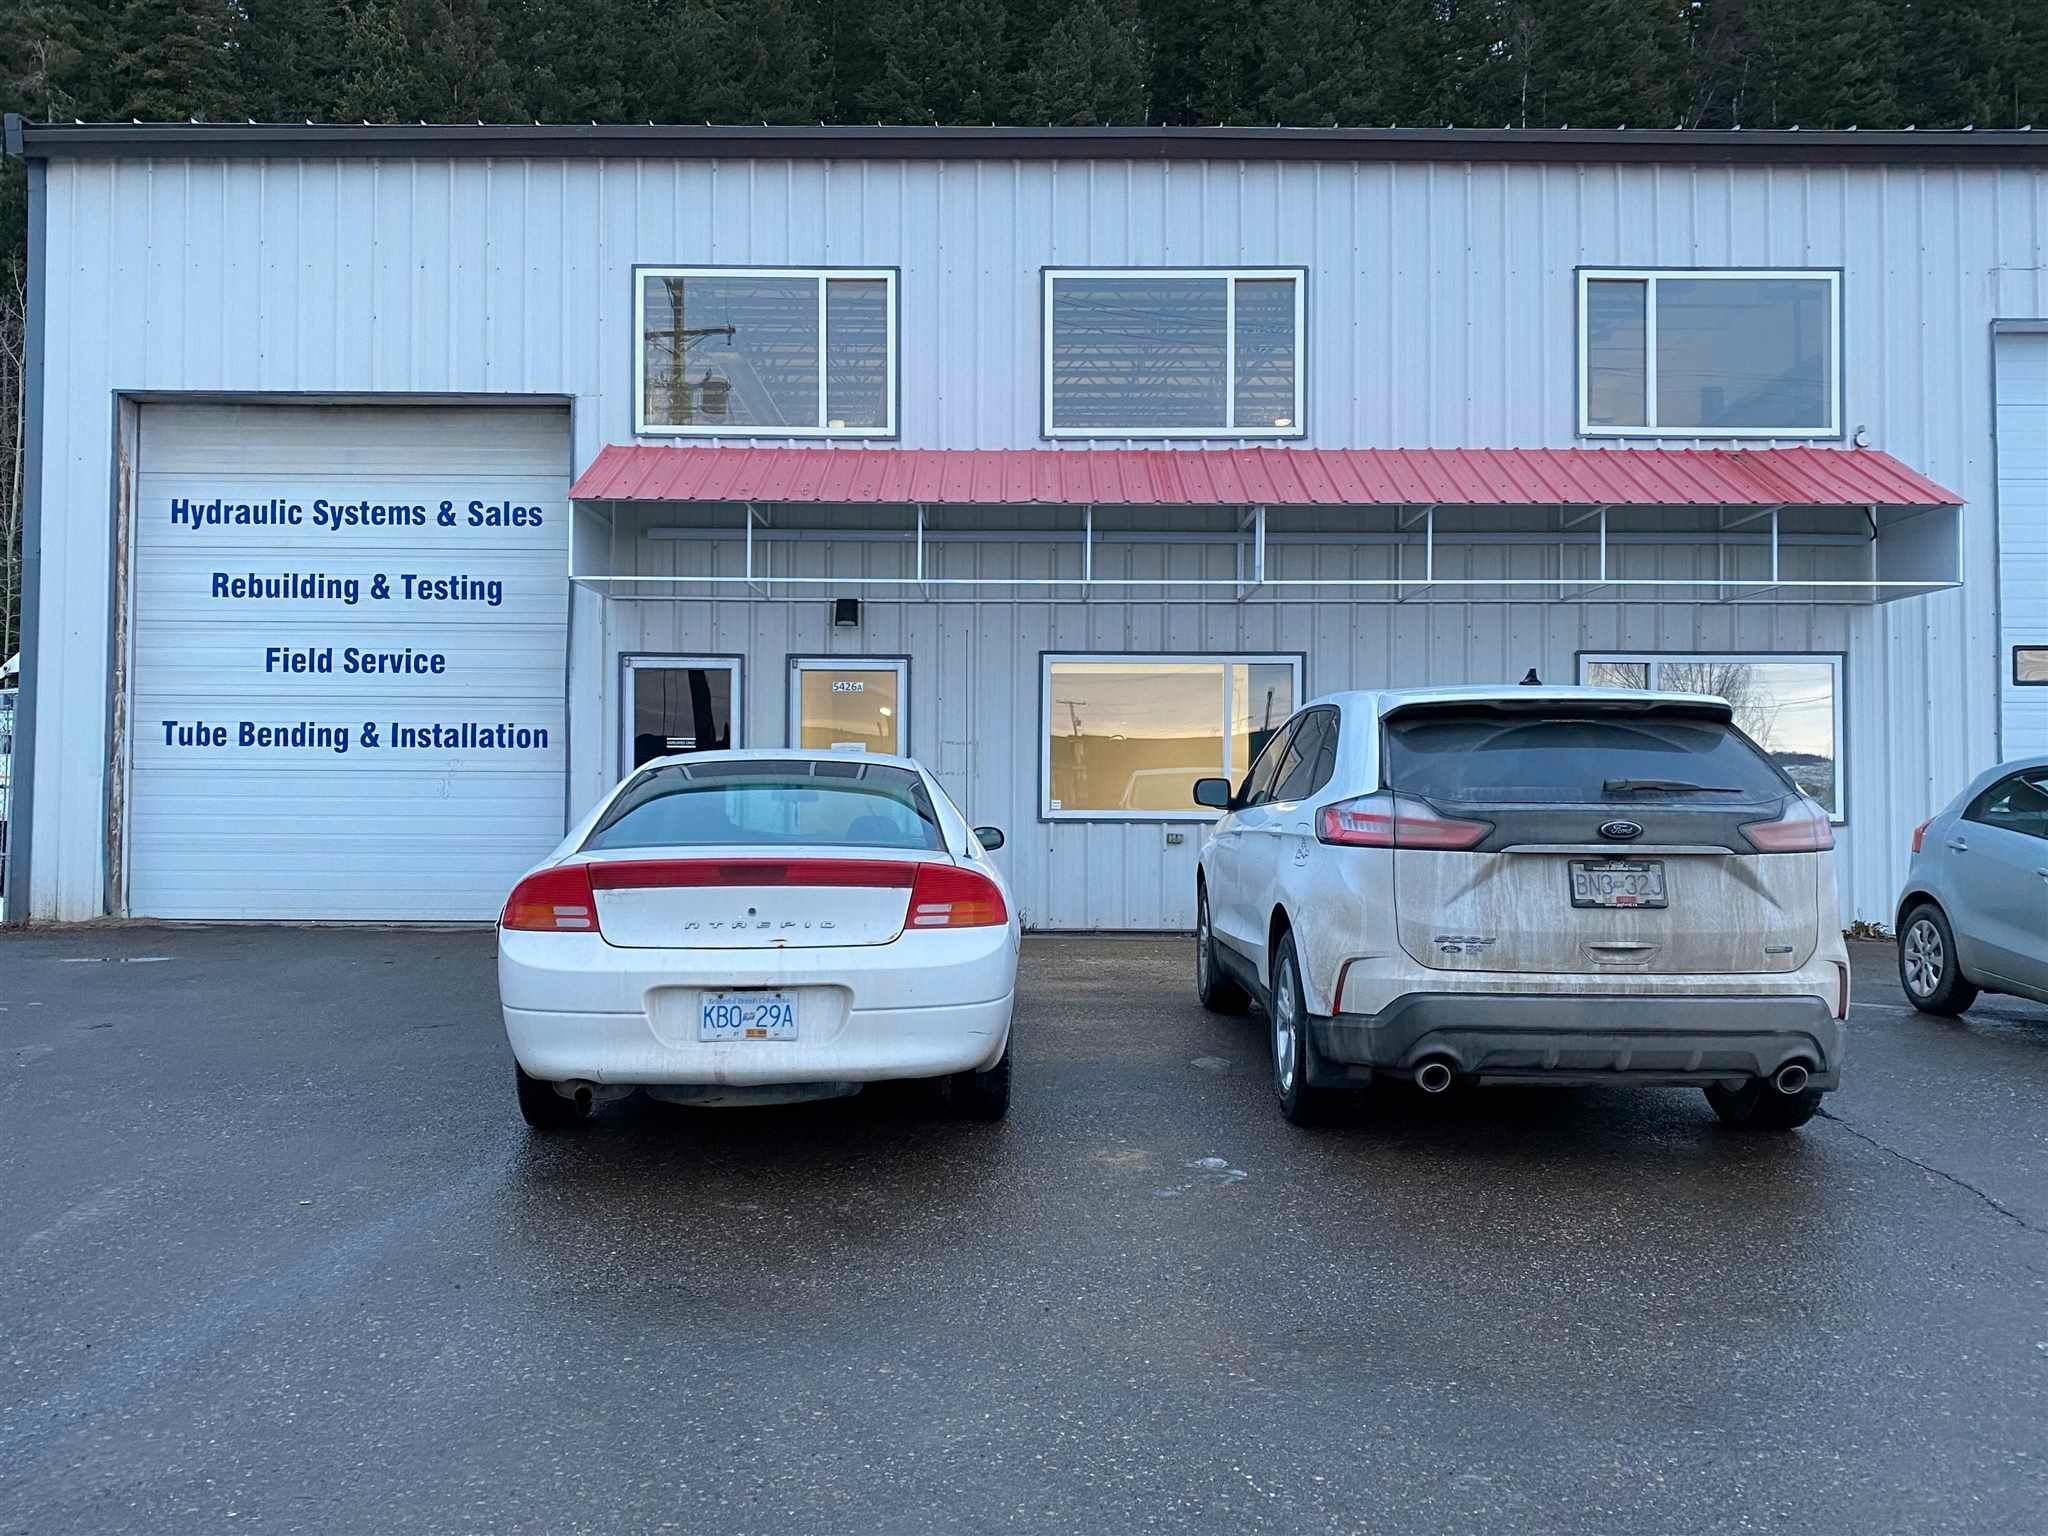 Main Photo: 5426A CONTINENTAL Way in Prince George: BCR Industrial Industrial for lease (PG City South East (Zone 75))  : MLS®# C8038925